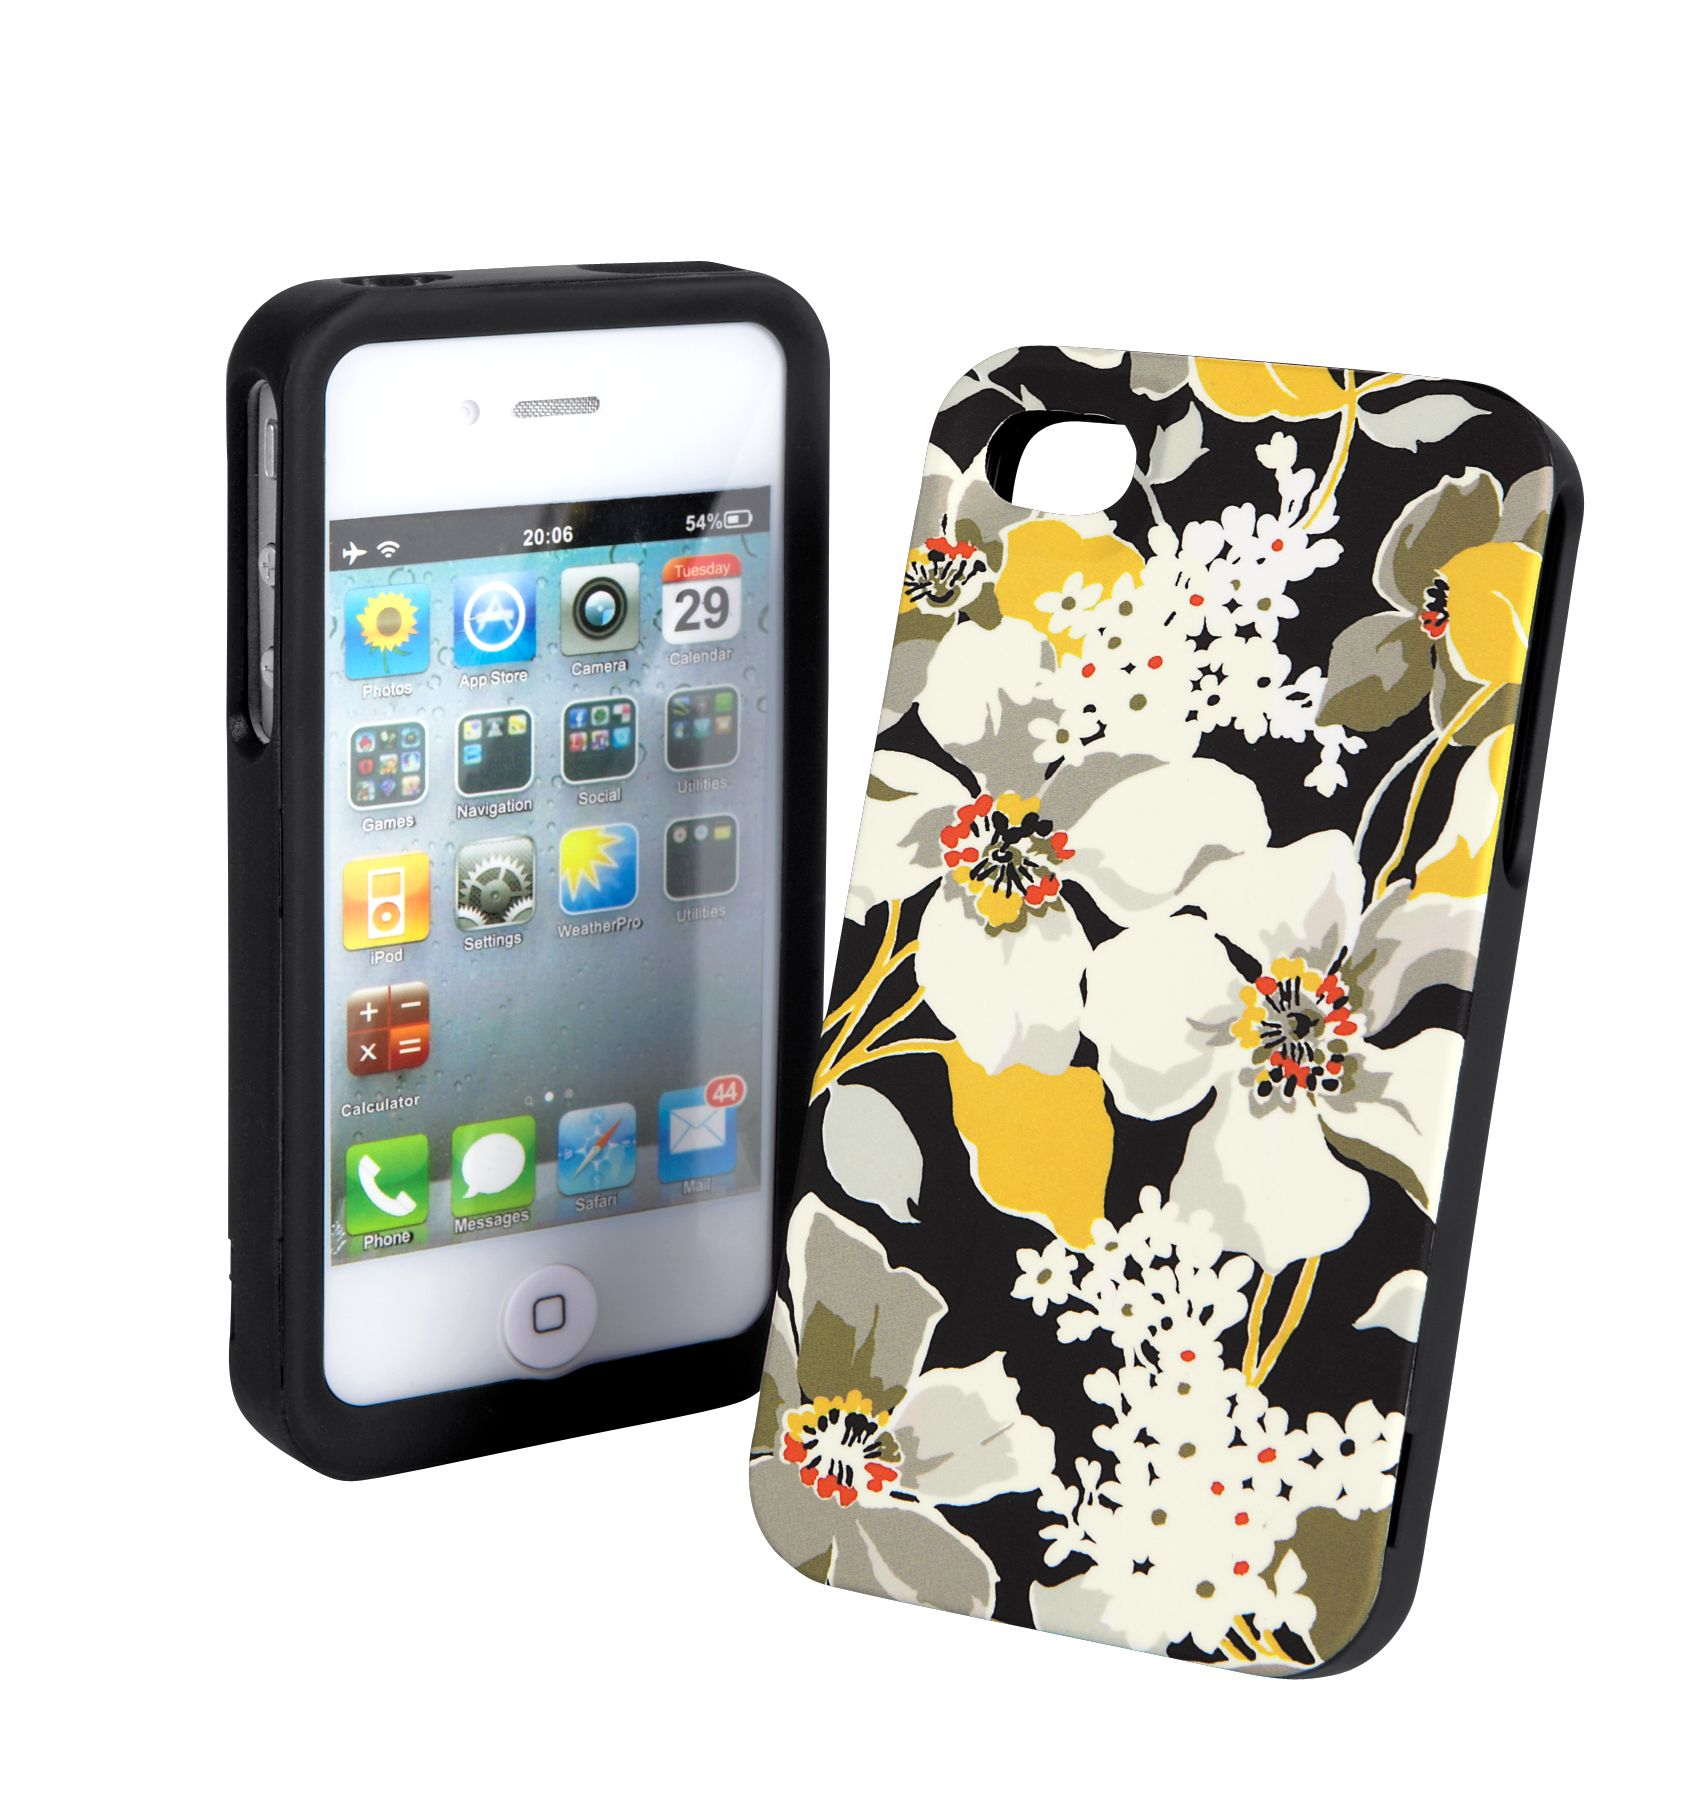 iphone 4s cases ebay vera bradley hardshell for iphone 4s or iphone 4 ebay 14425